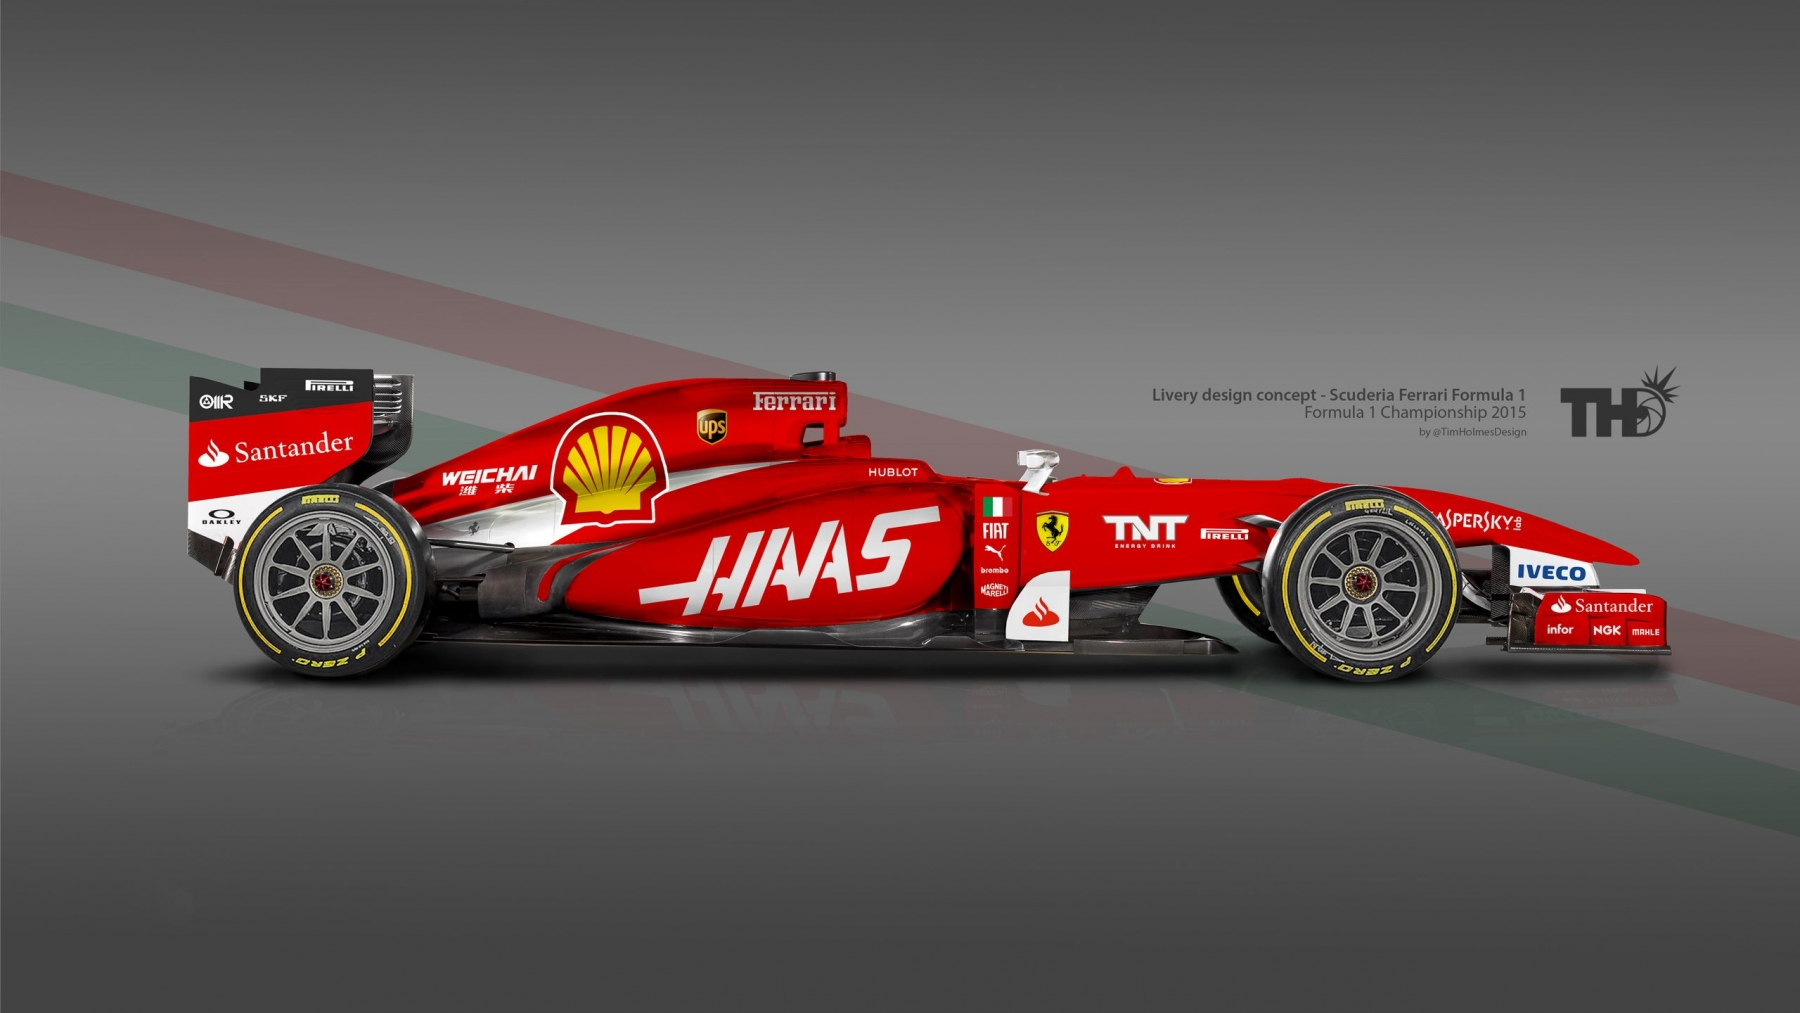 F1 Ferrari Hd Wallpapers Background Images Photos Pictures